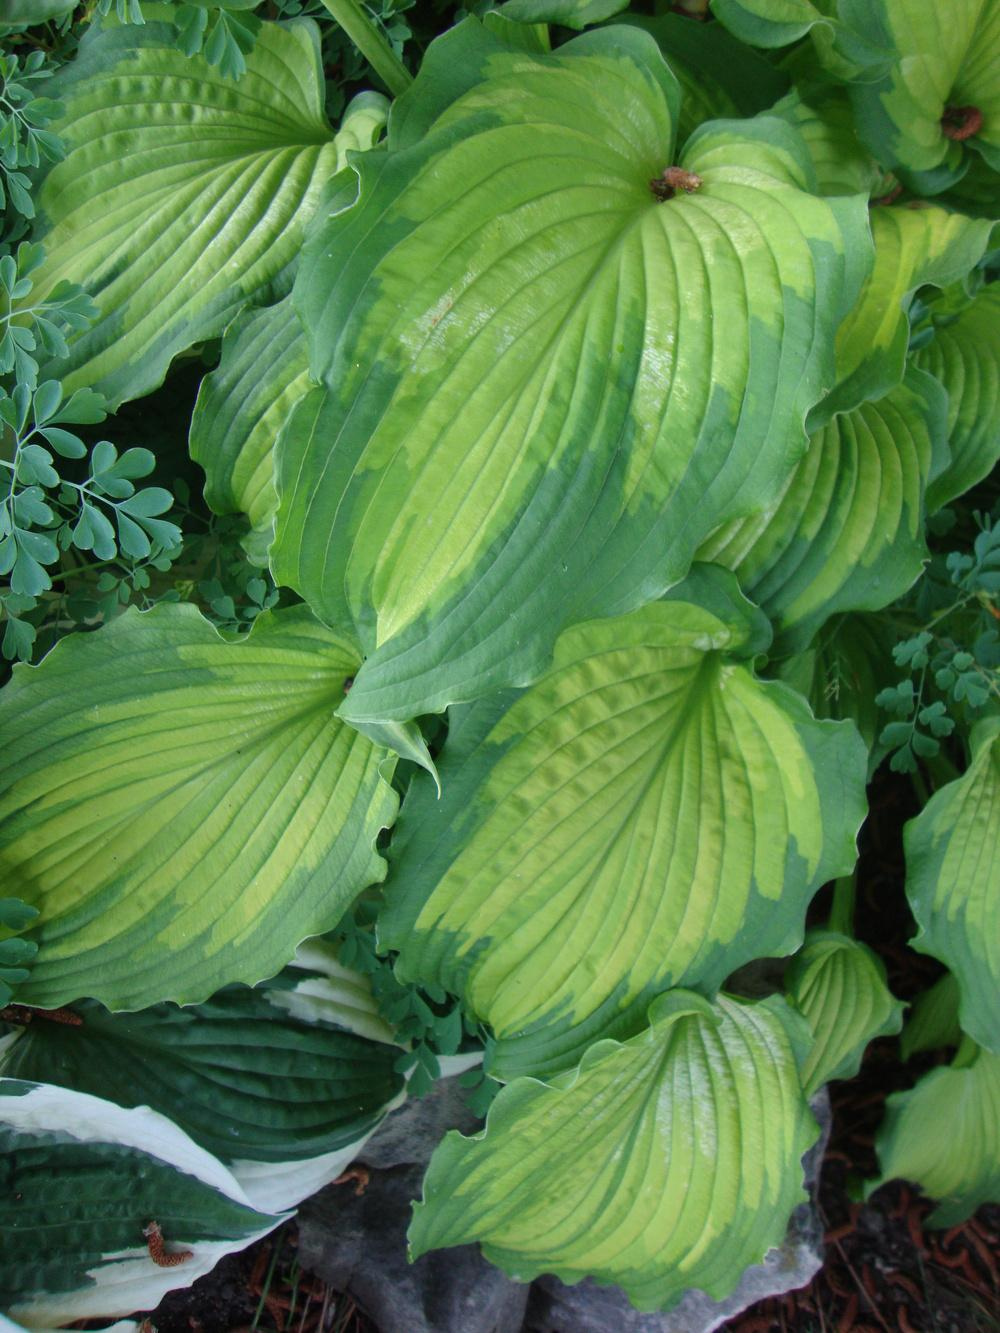 Photo of Hosta 'Emerald Ruff Cut' uploaded by Paul2032